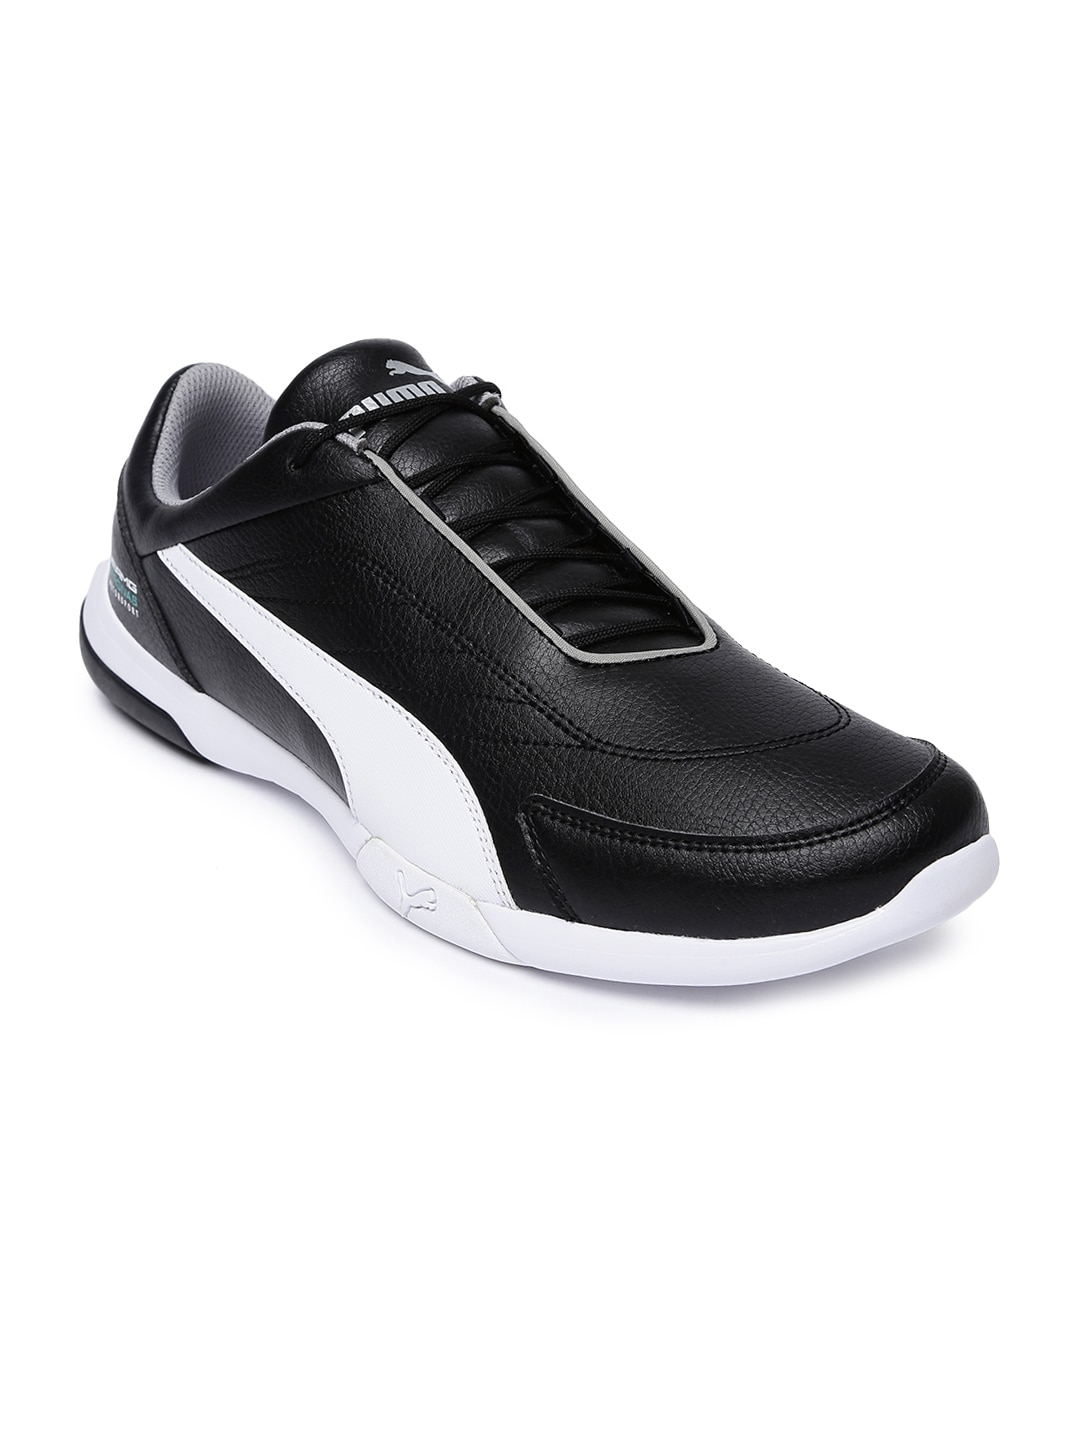 a75d1f1545957 Puma Basketball Shoes - Buy Puma Basketball Shoes Online in India